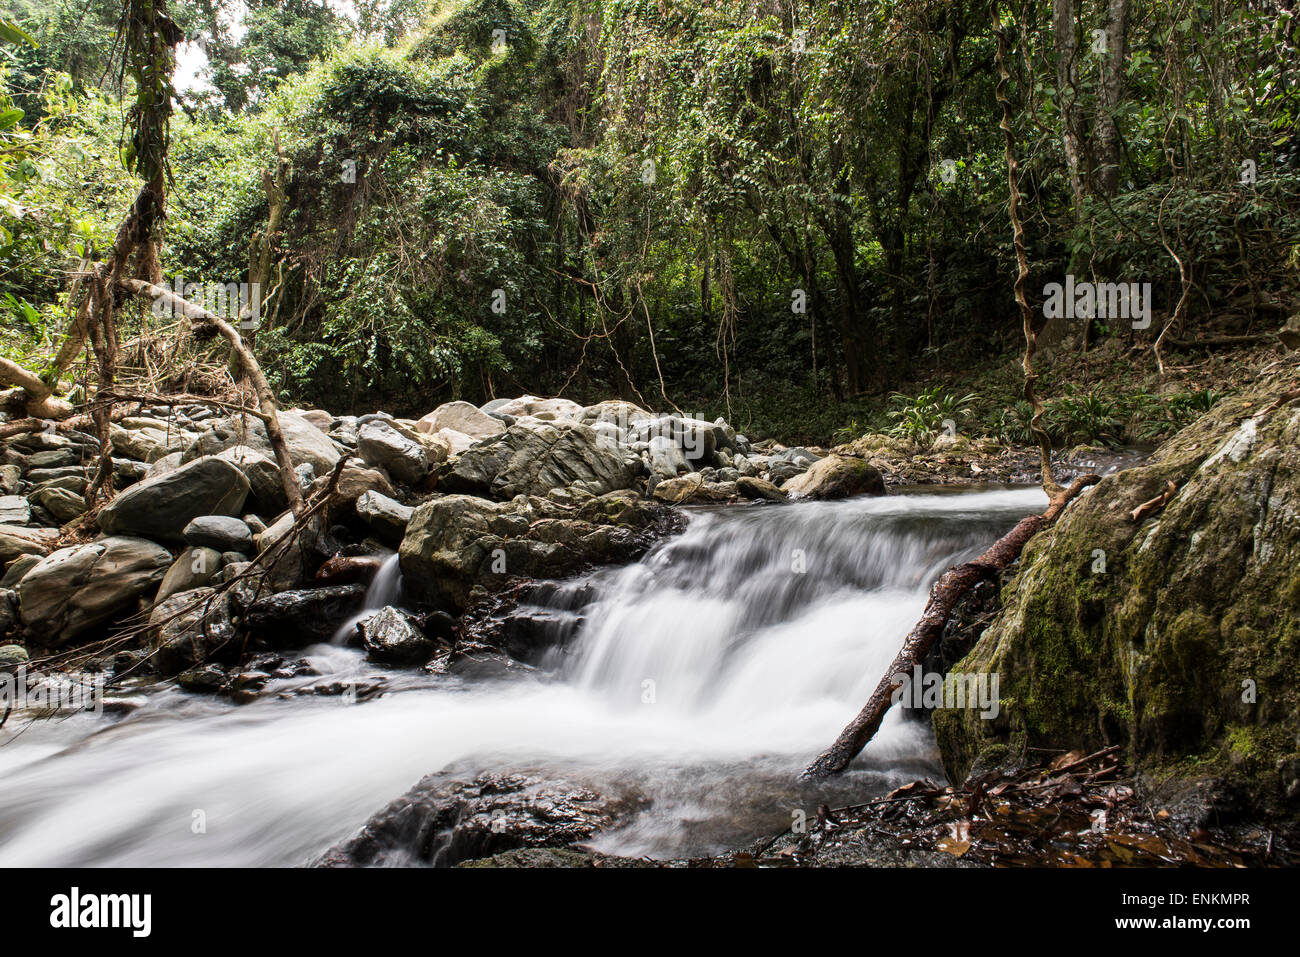 Waterfalls along the Lost City (Ciudad Perdida) trek Sierra Nevada mountains Santa Marta Colombia - Stock Image